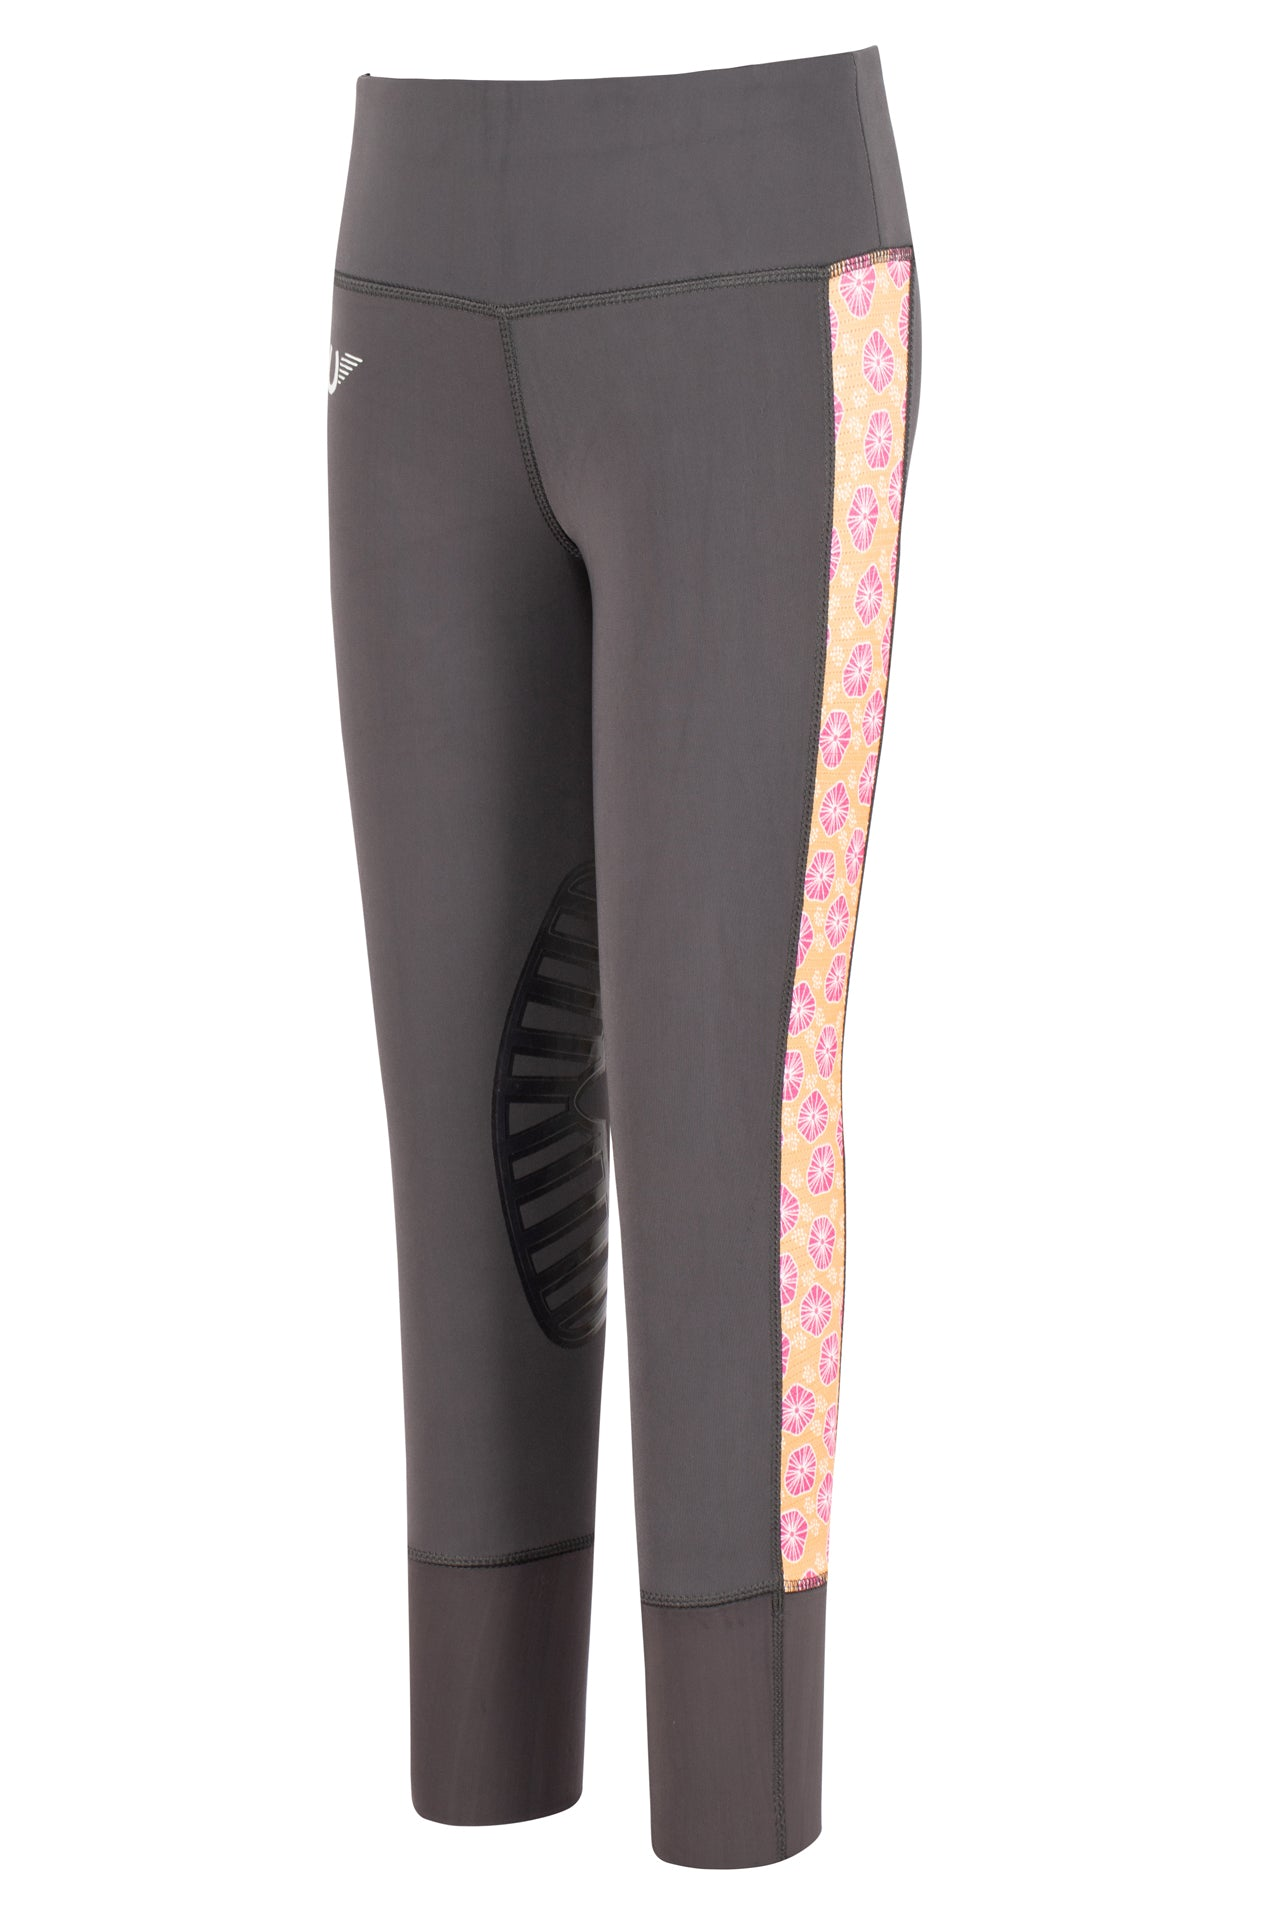 TuffRider Children's Athena EquiCool Riding Tights - TuffRider - Breeches.com